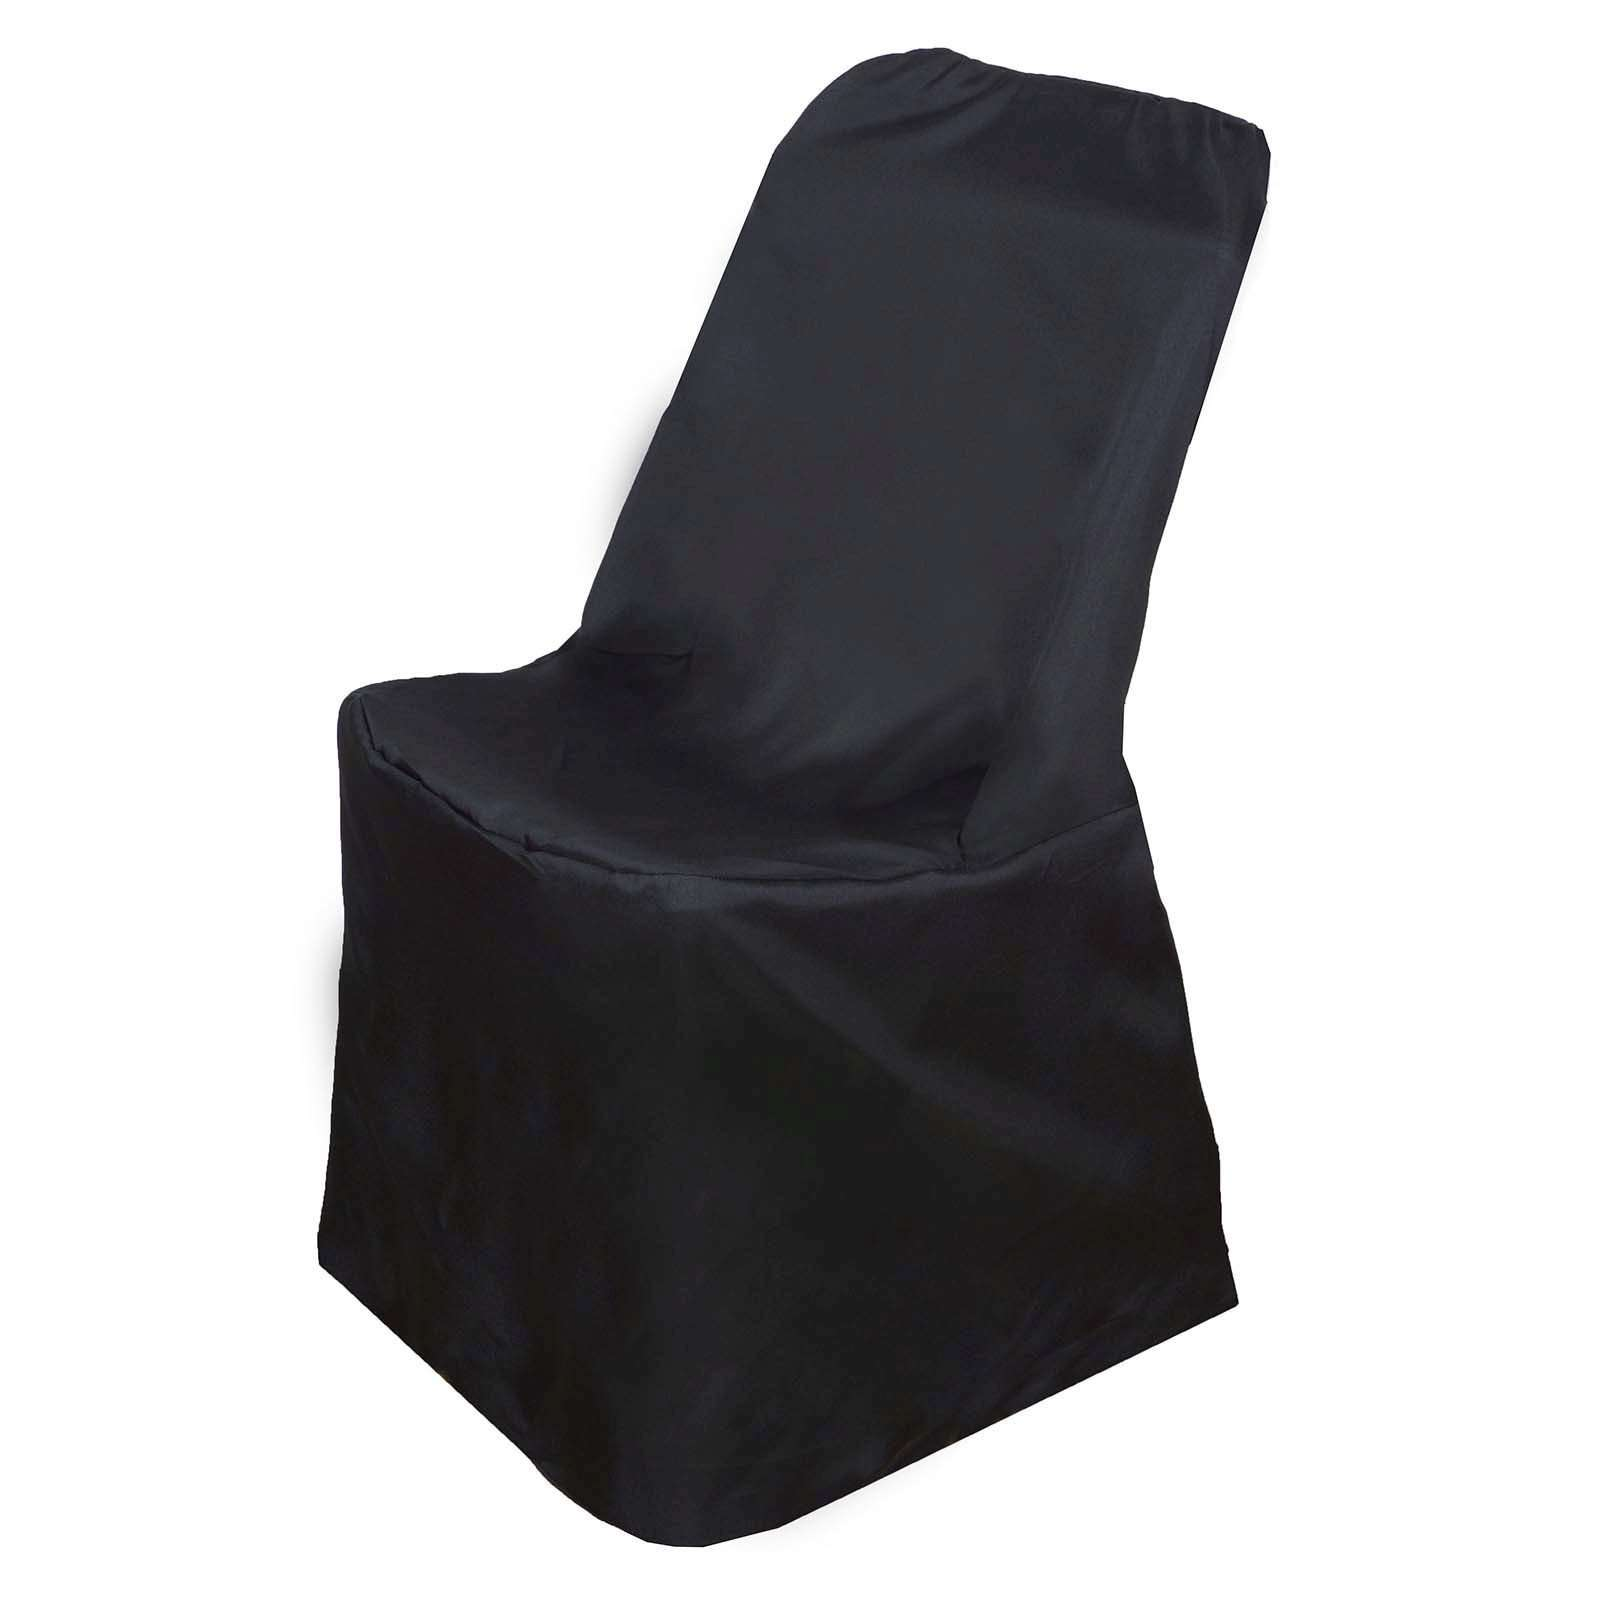 Brilliant Wholesale Black Polyester Lifetime Folding Chair Covers Party Wedding Event Chaircoverfactory Pdpeps Interior Chair Design Pdpepsorg